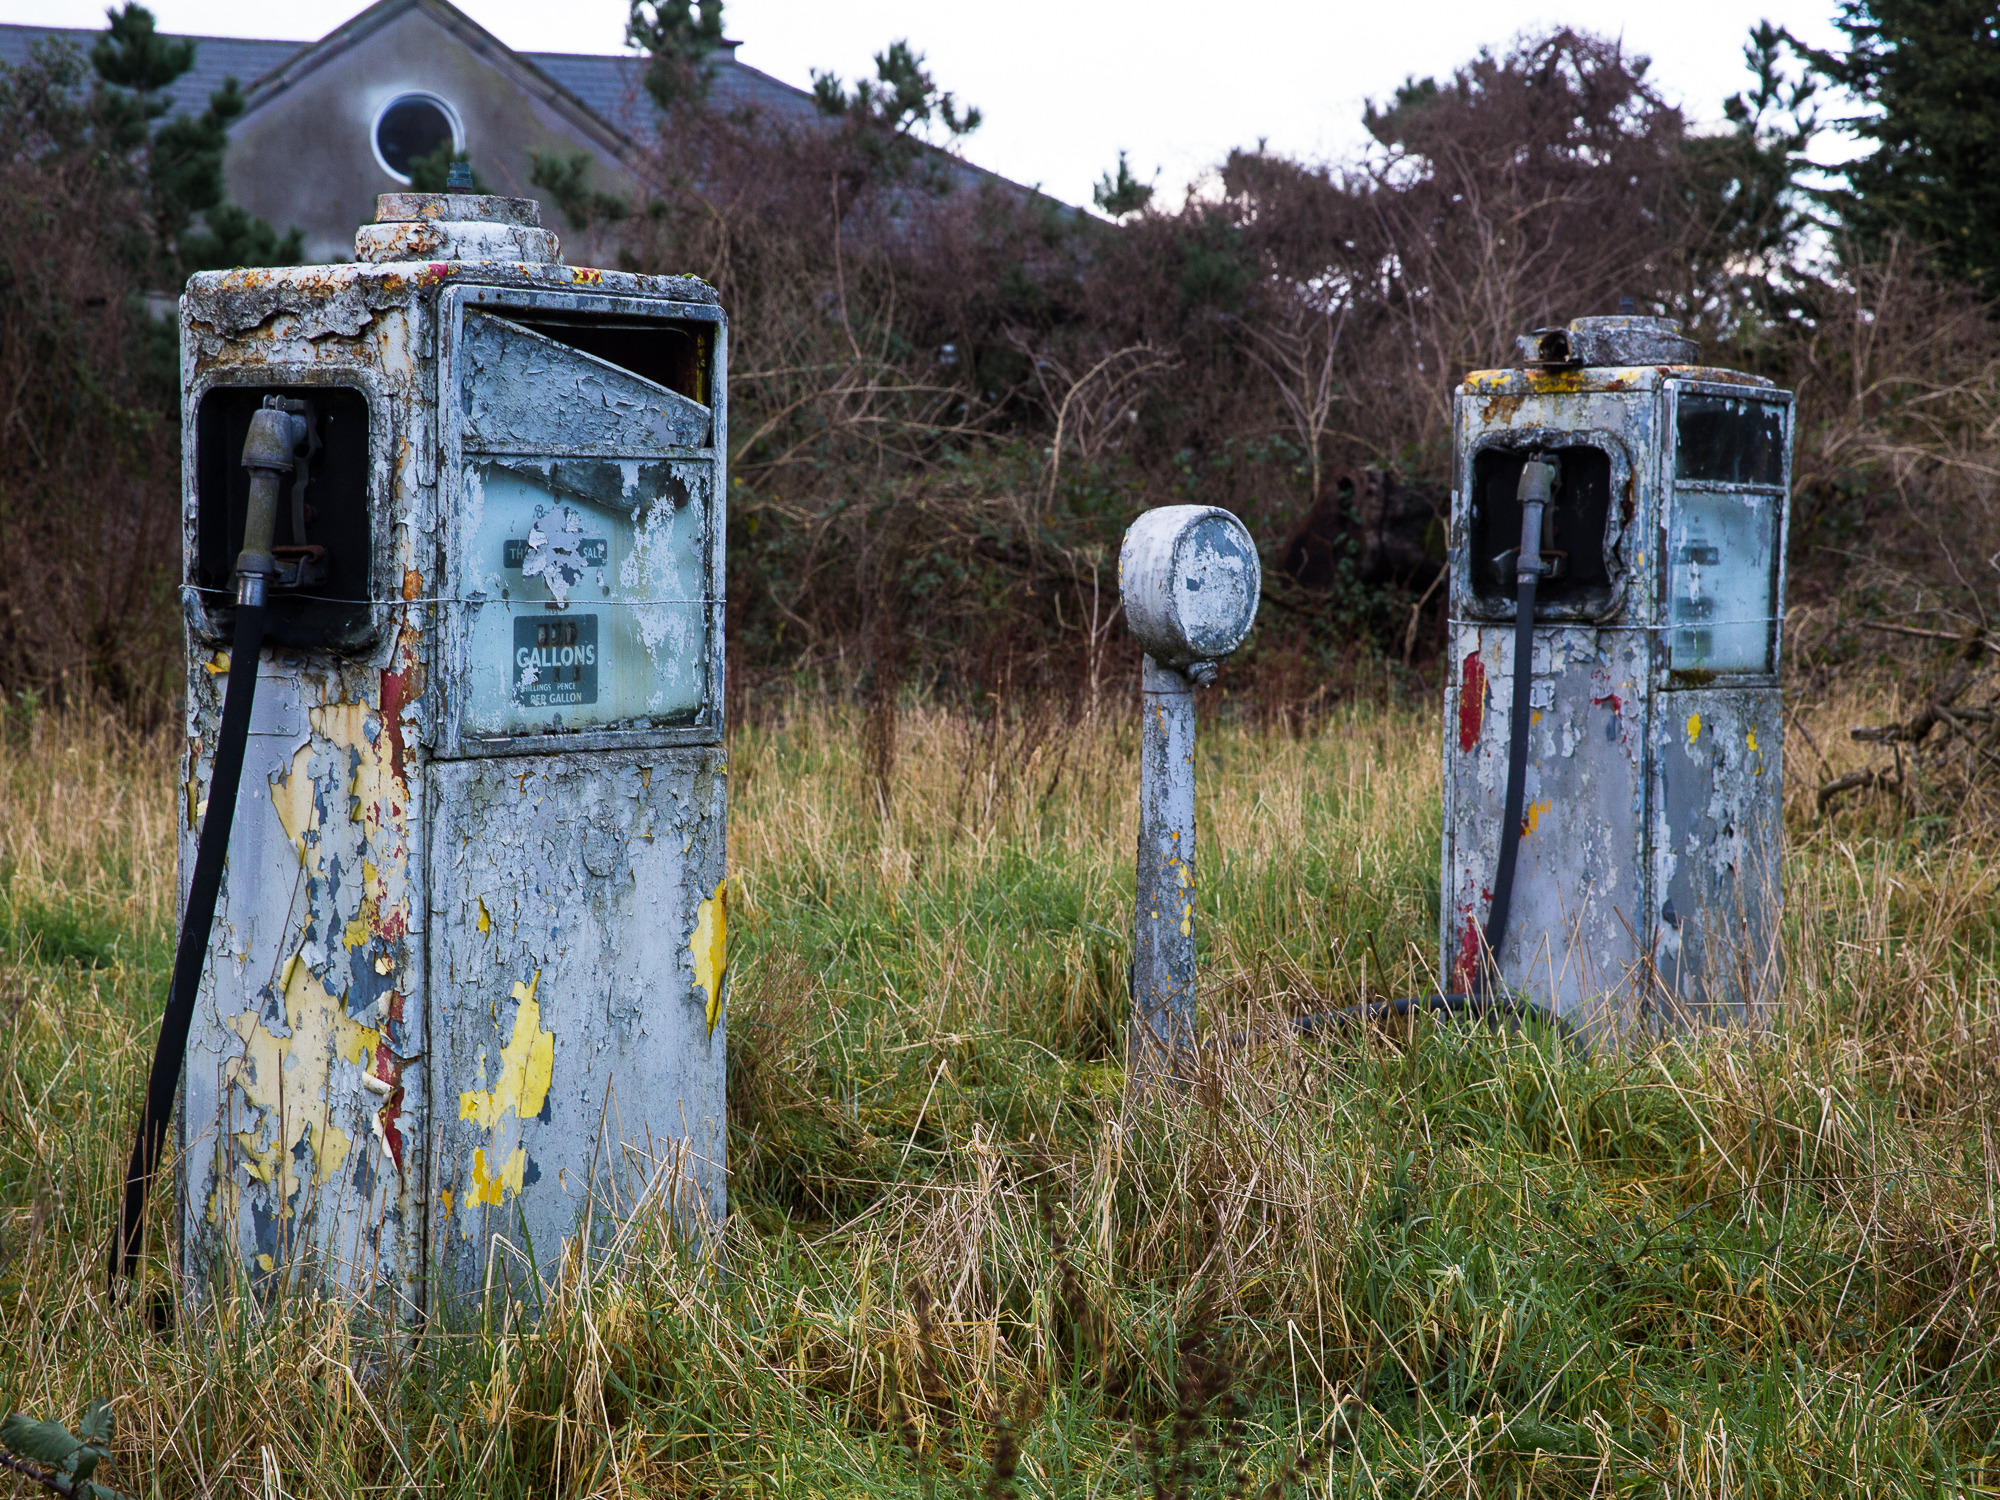 Two old petrol pumps stand in a grassy field